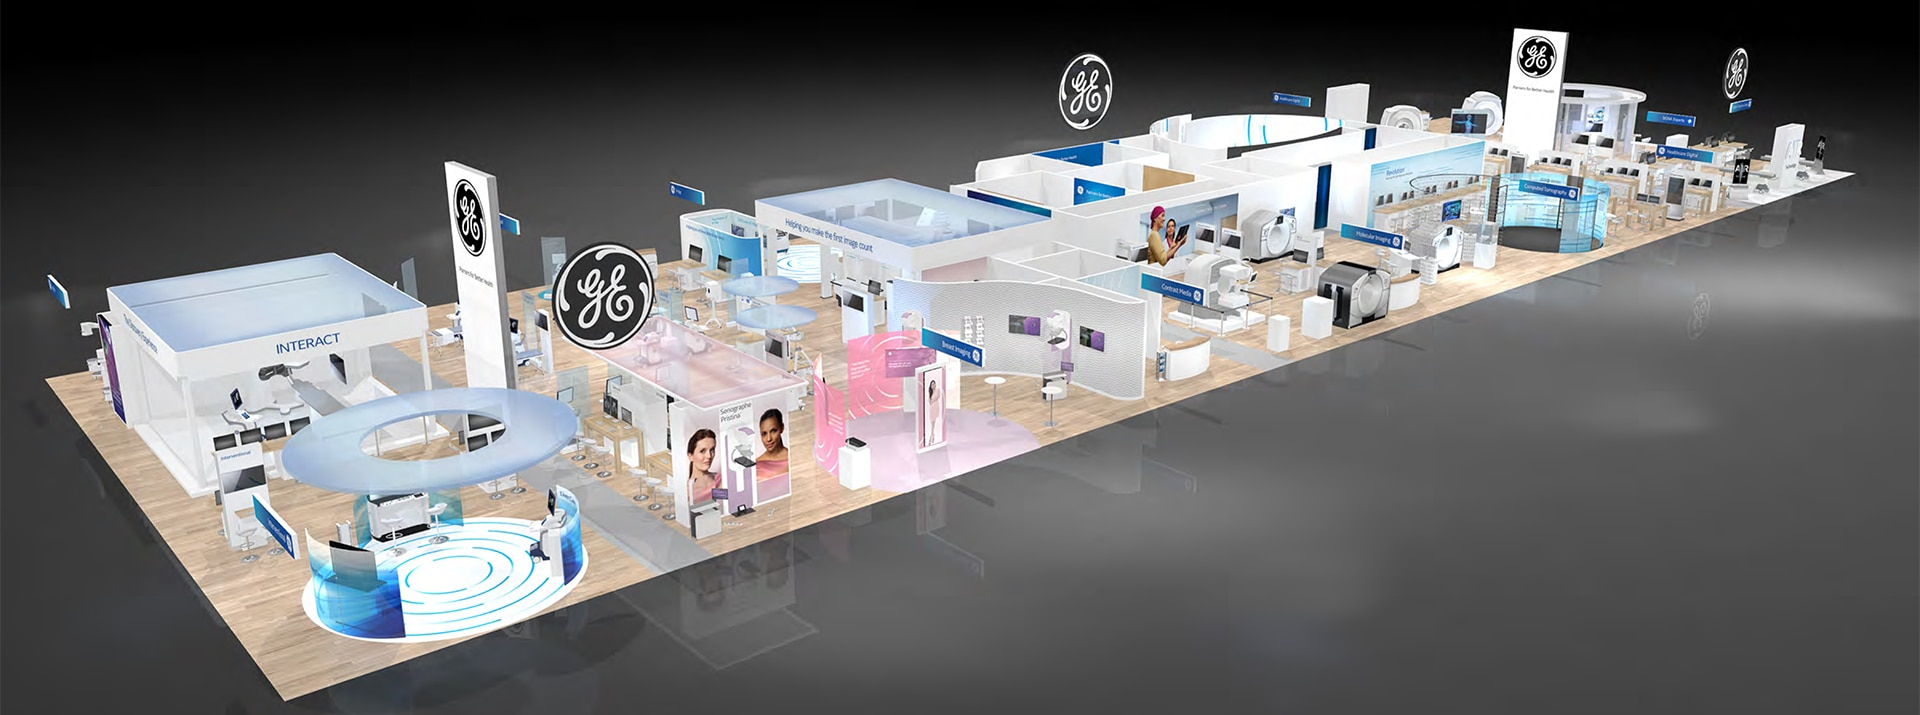 booth map2